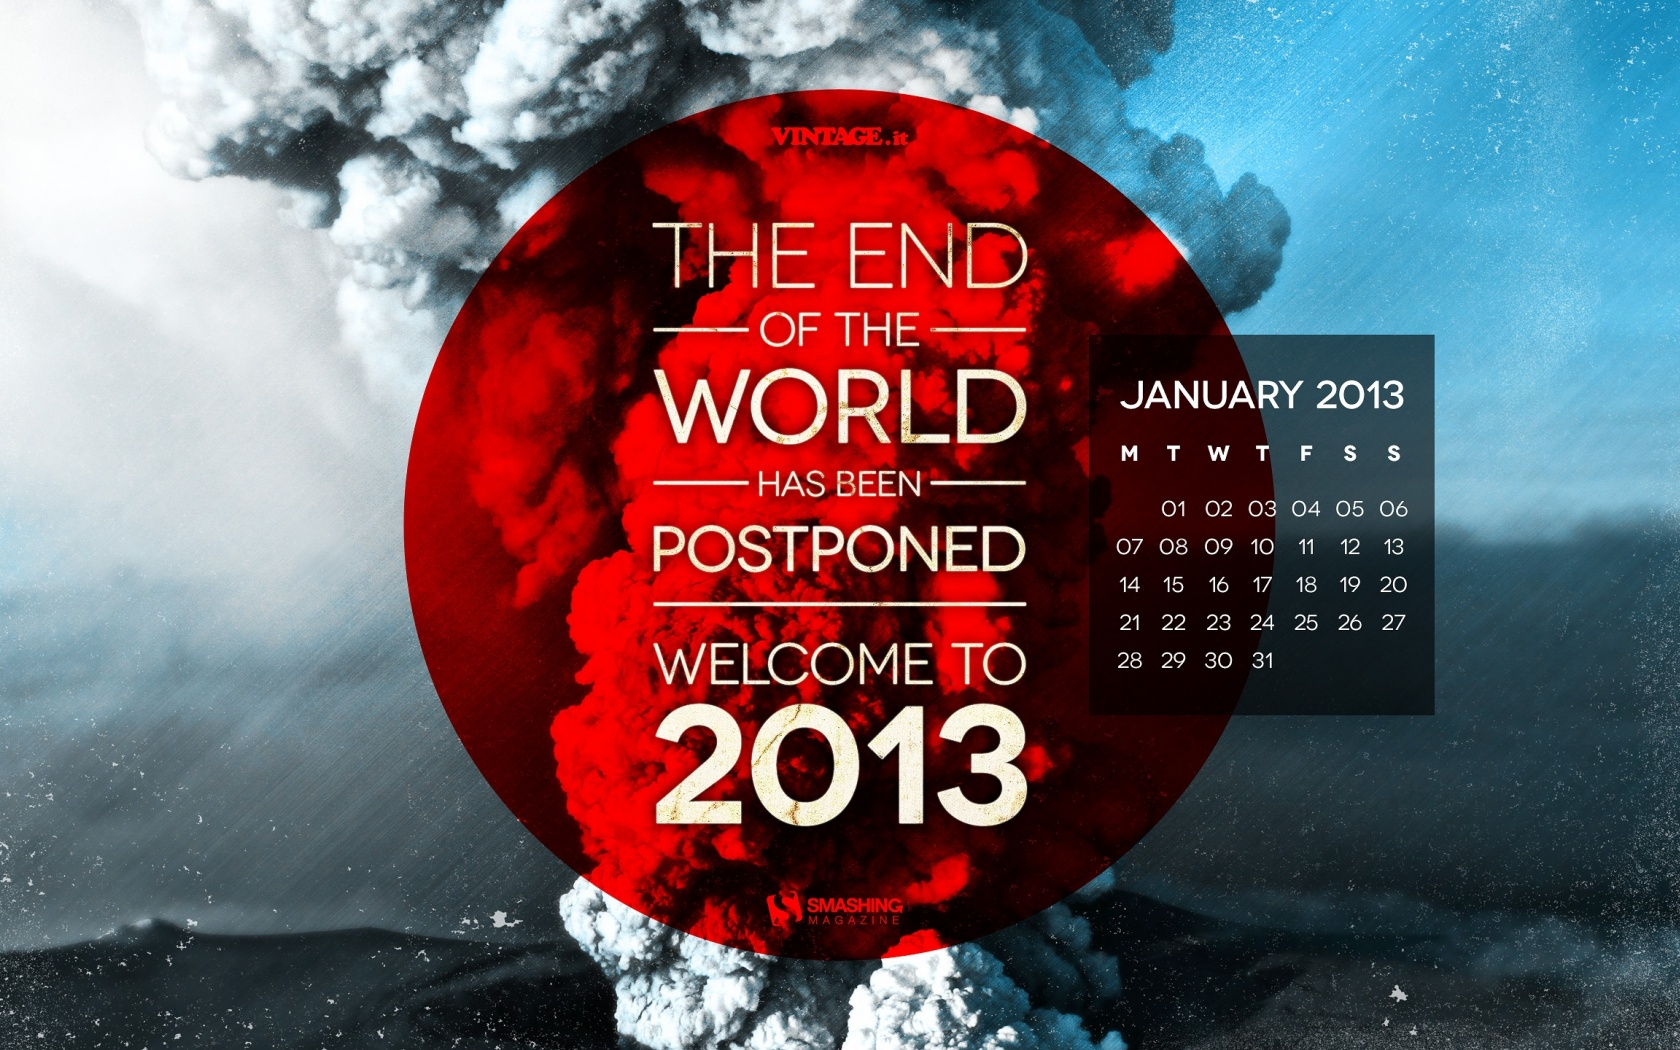 1680x1050 End Of The World Postponed